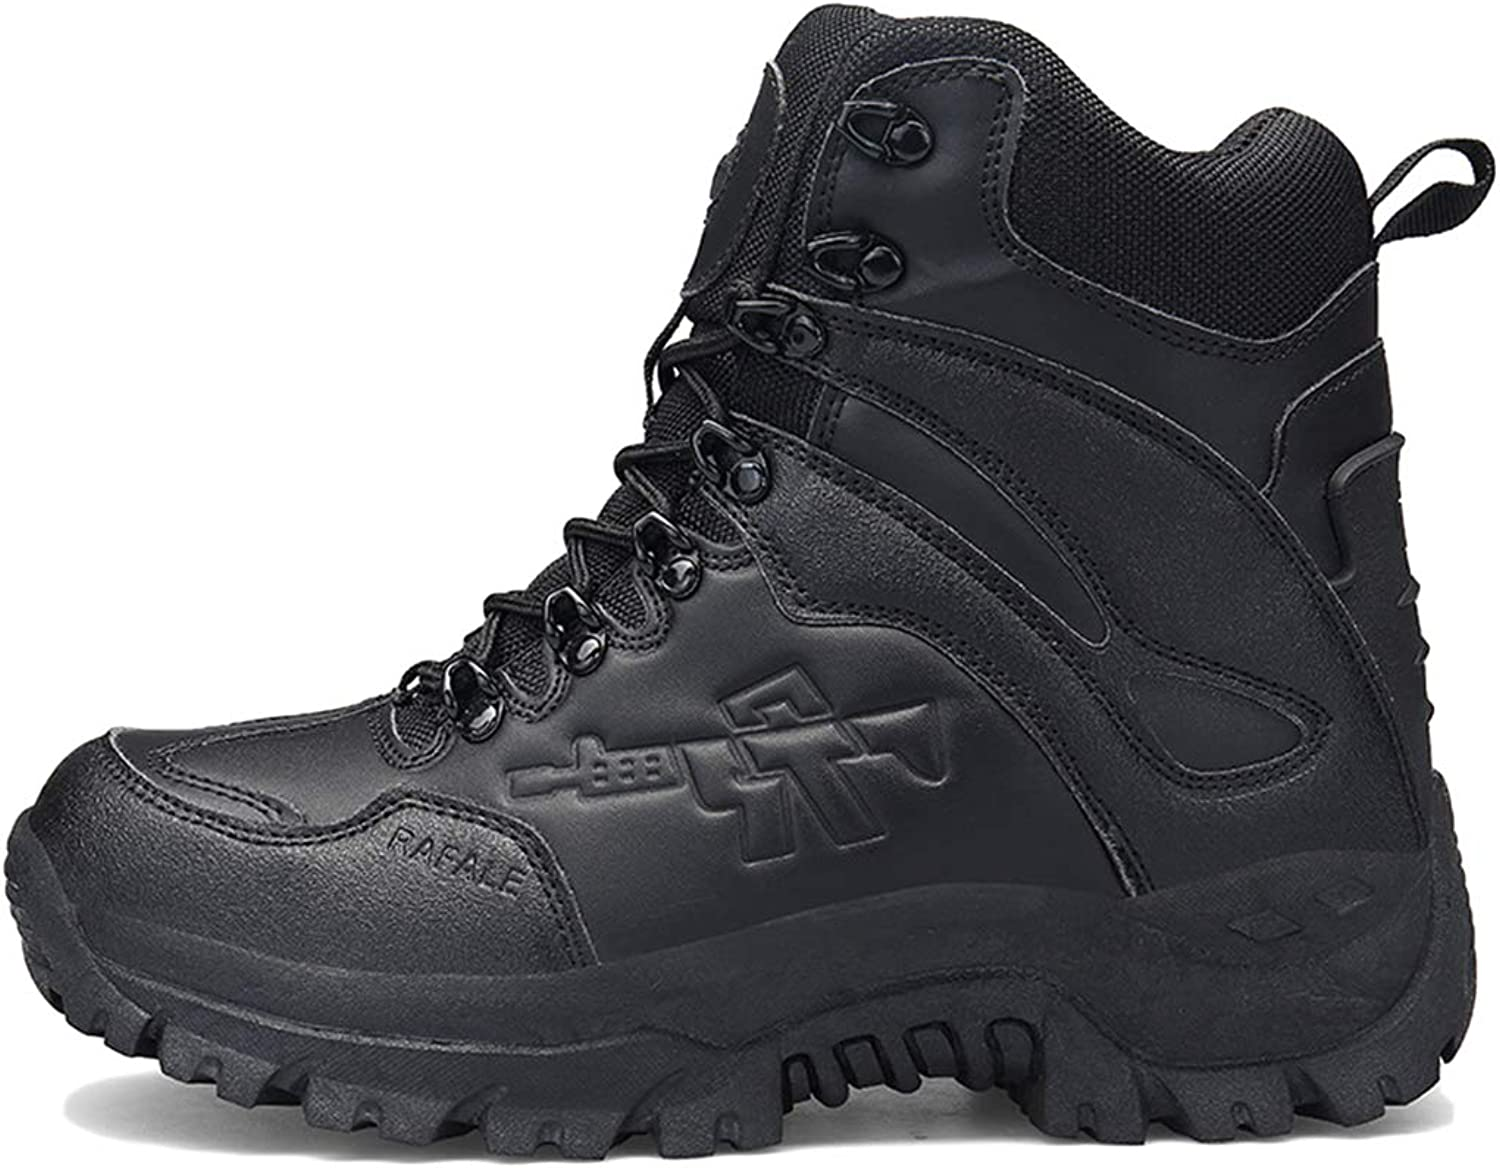 Mens Army Military shoes Patrol Leather Combat Boots Outdoor Desert Cadet Security Armed Jungle Lace Anti-Slip Footwear,Black,40